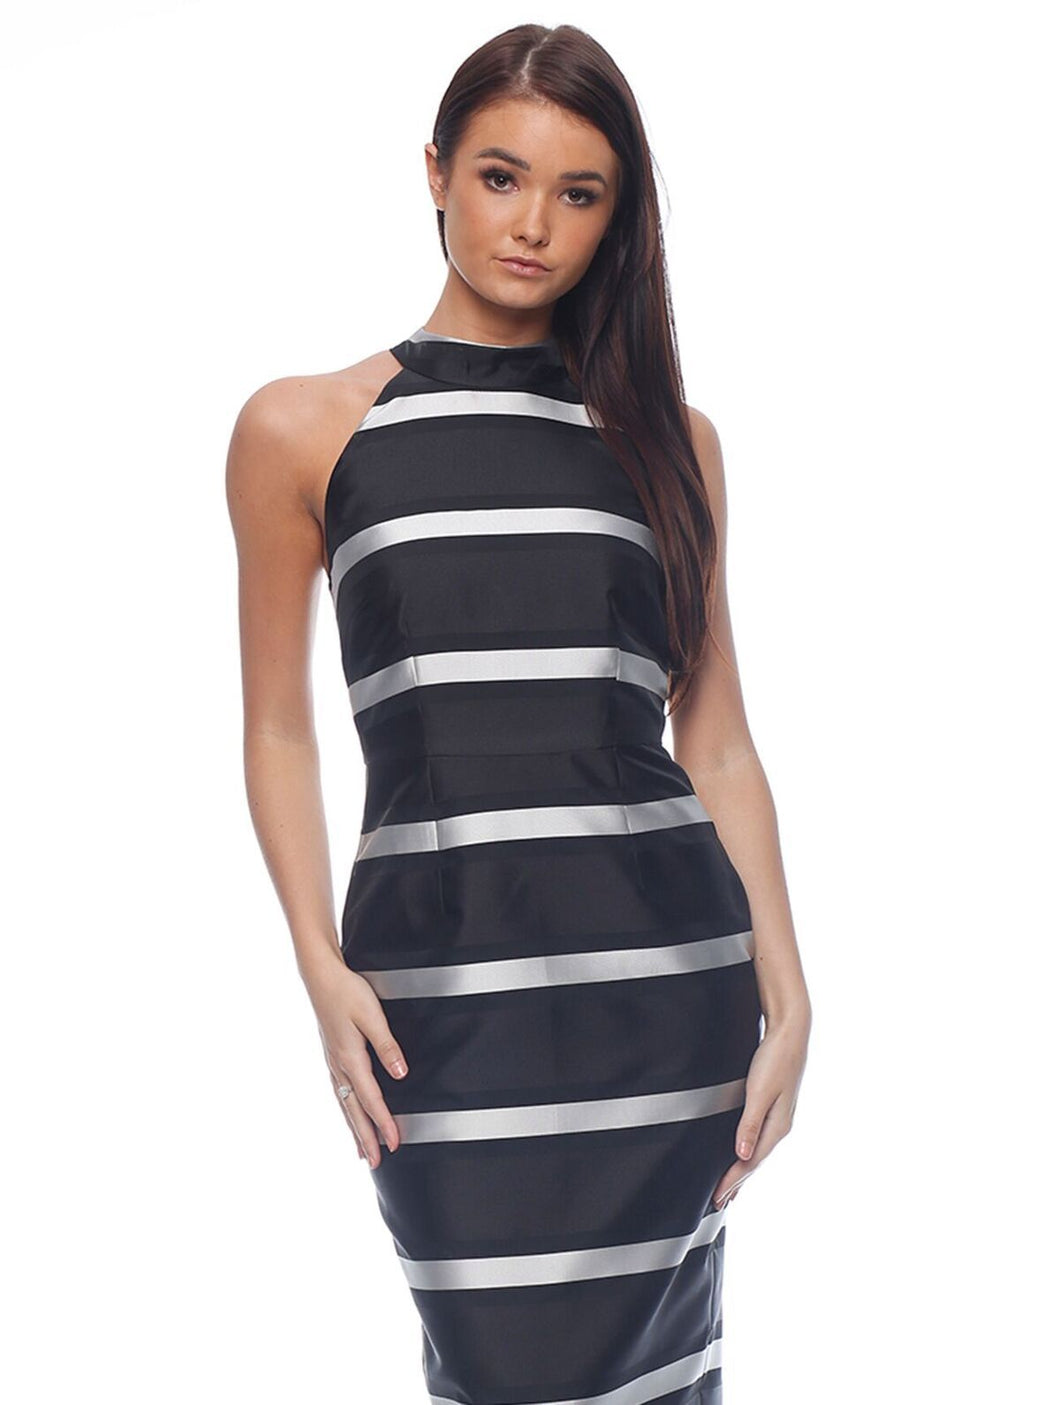 Honey and Beau - Stripe Halter Dress - HHD185003